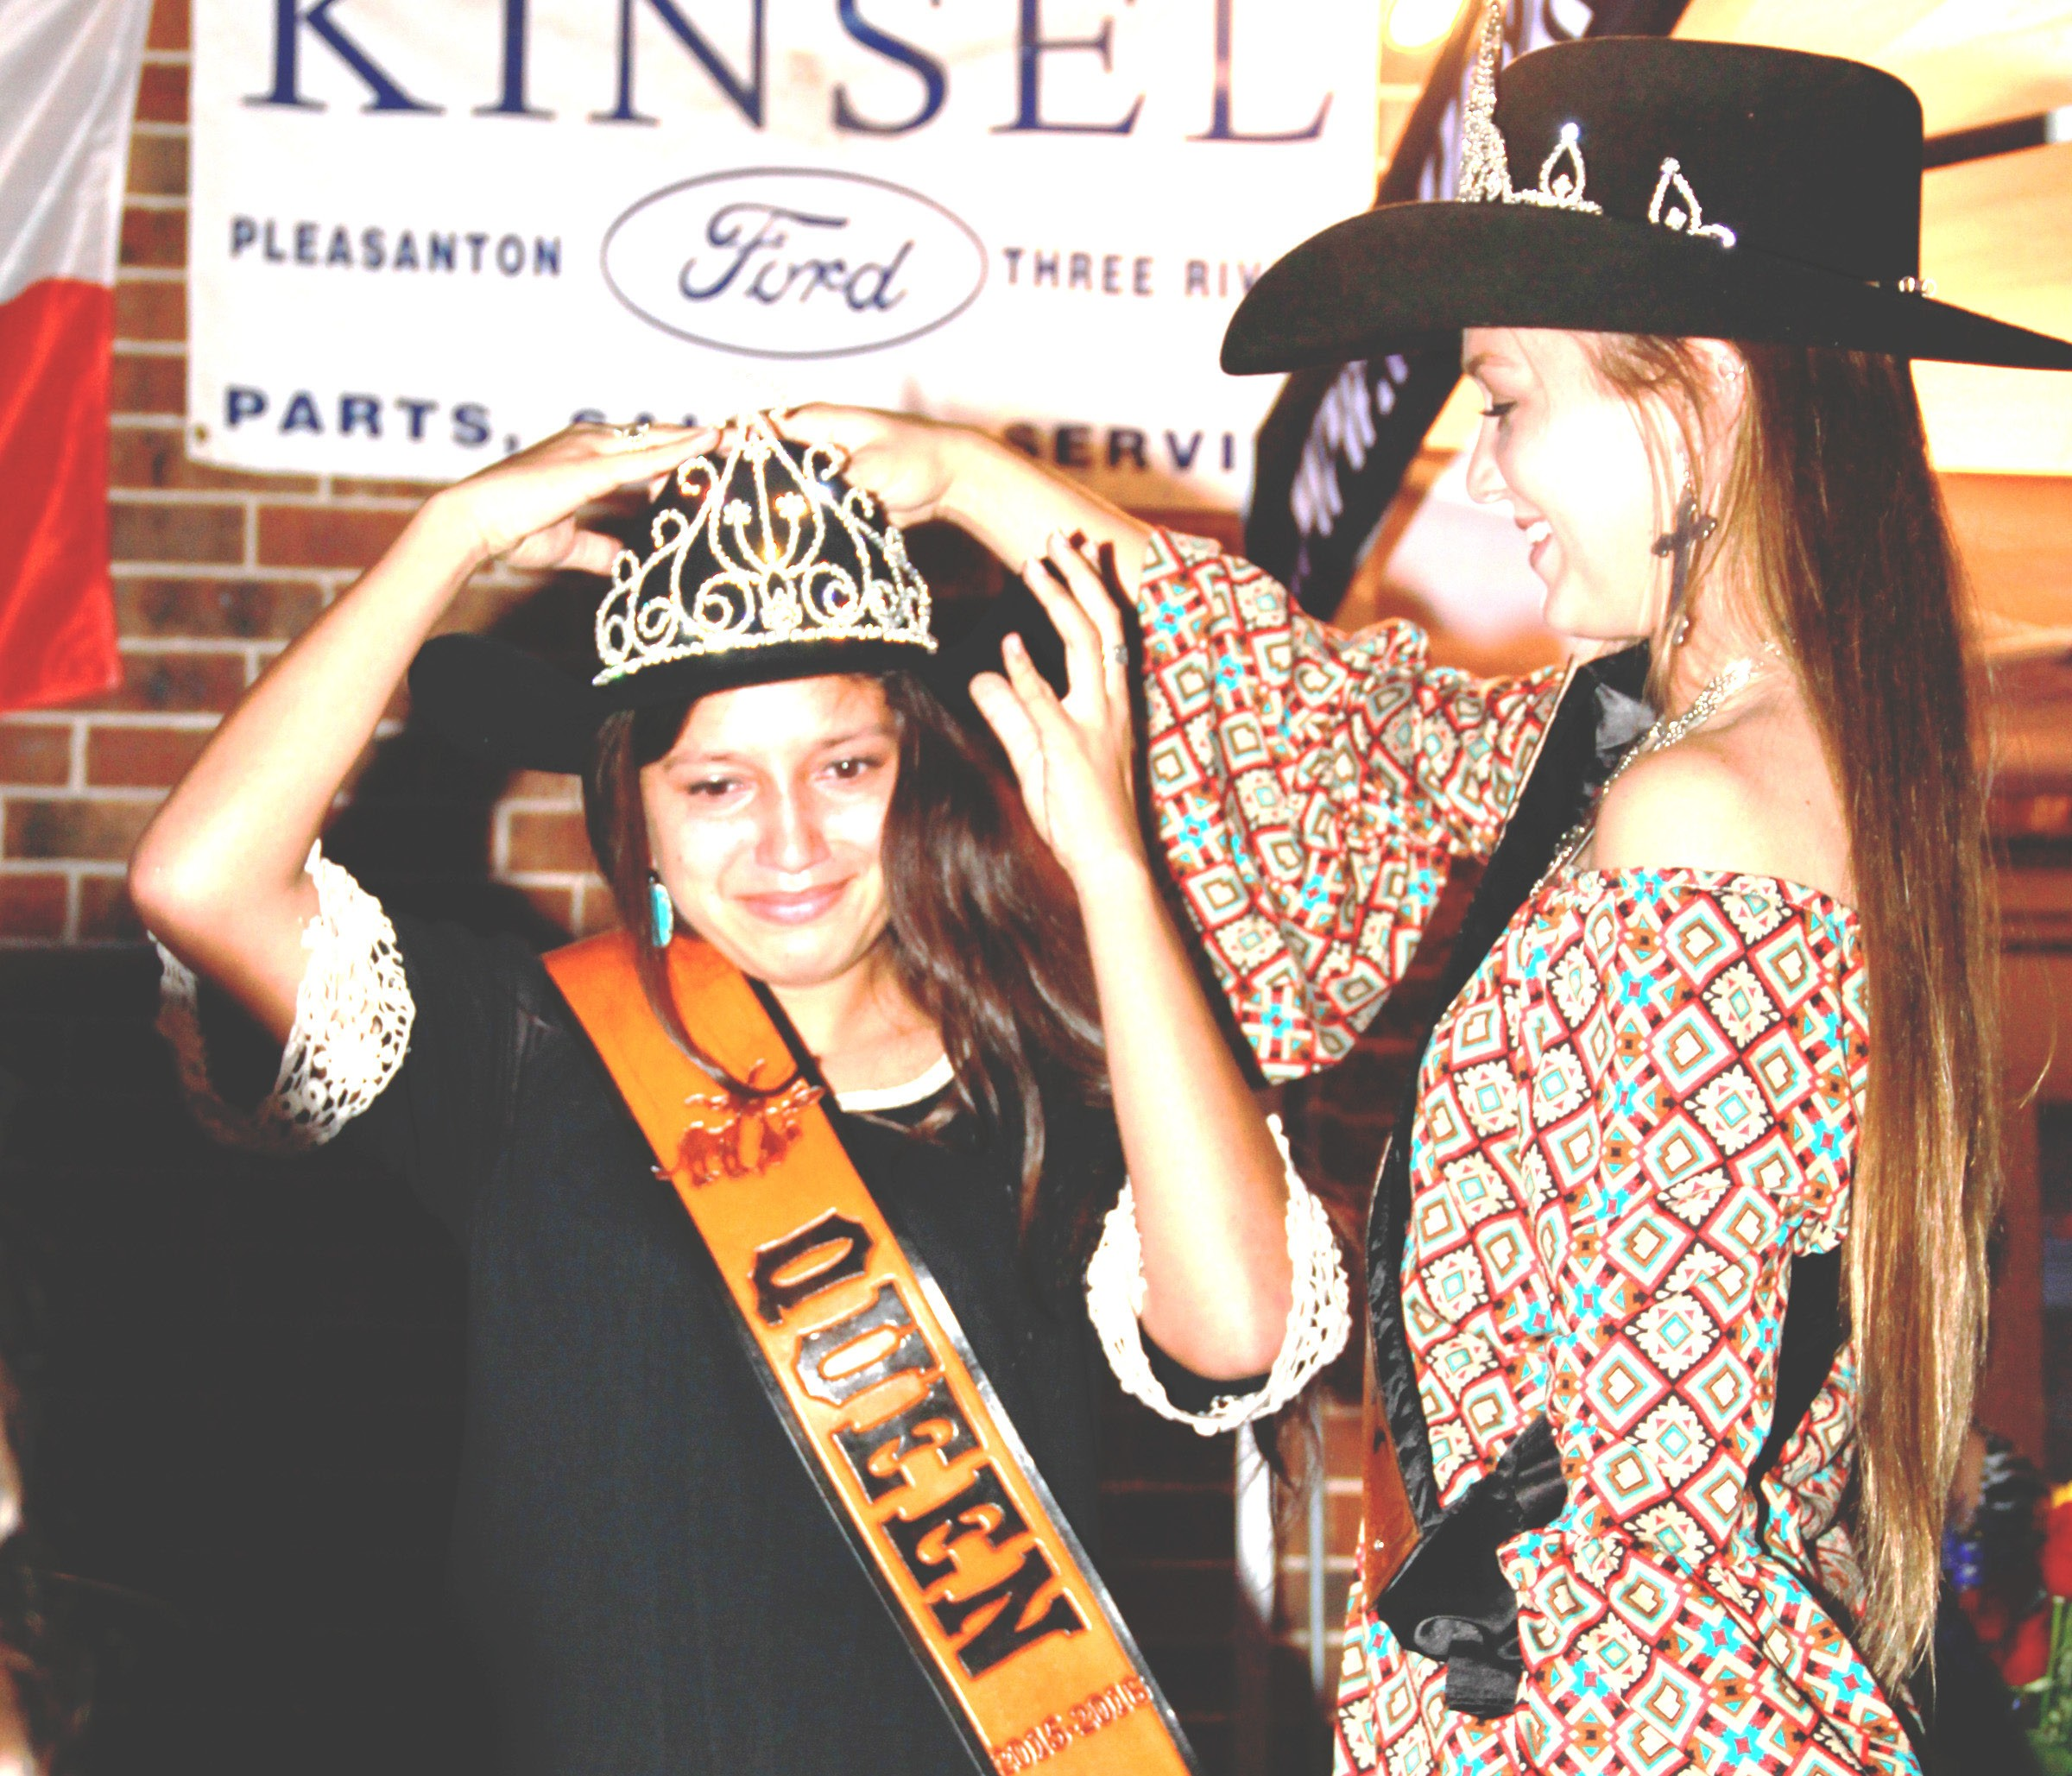 Cassidy Fernandez was crowned the 50th Cowboy Homecoming Queen by last year's queen Jordyn Olle. The coronation took place in misting weather at Kadobe's restaurant patio on Thursday, October 22.